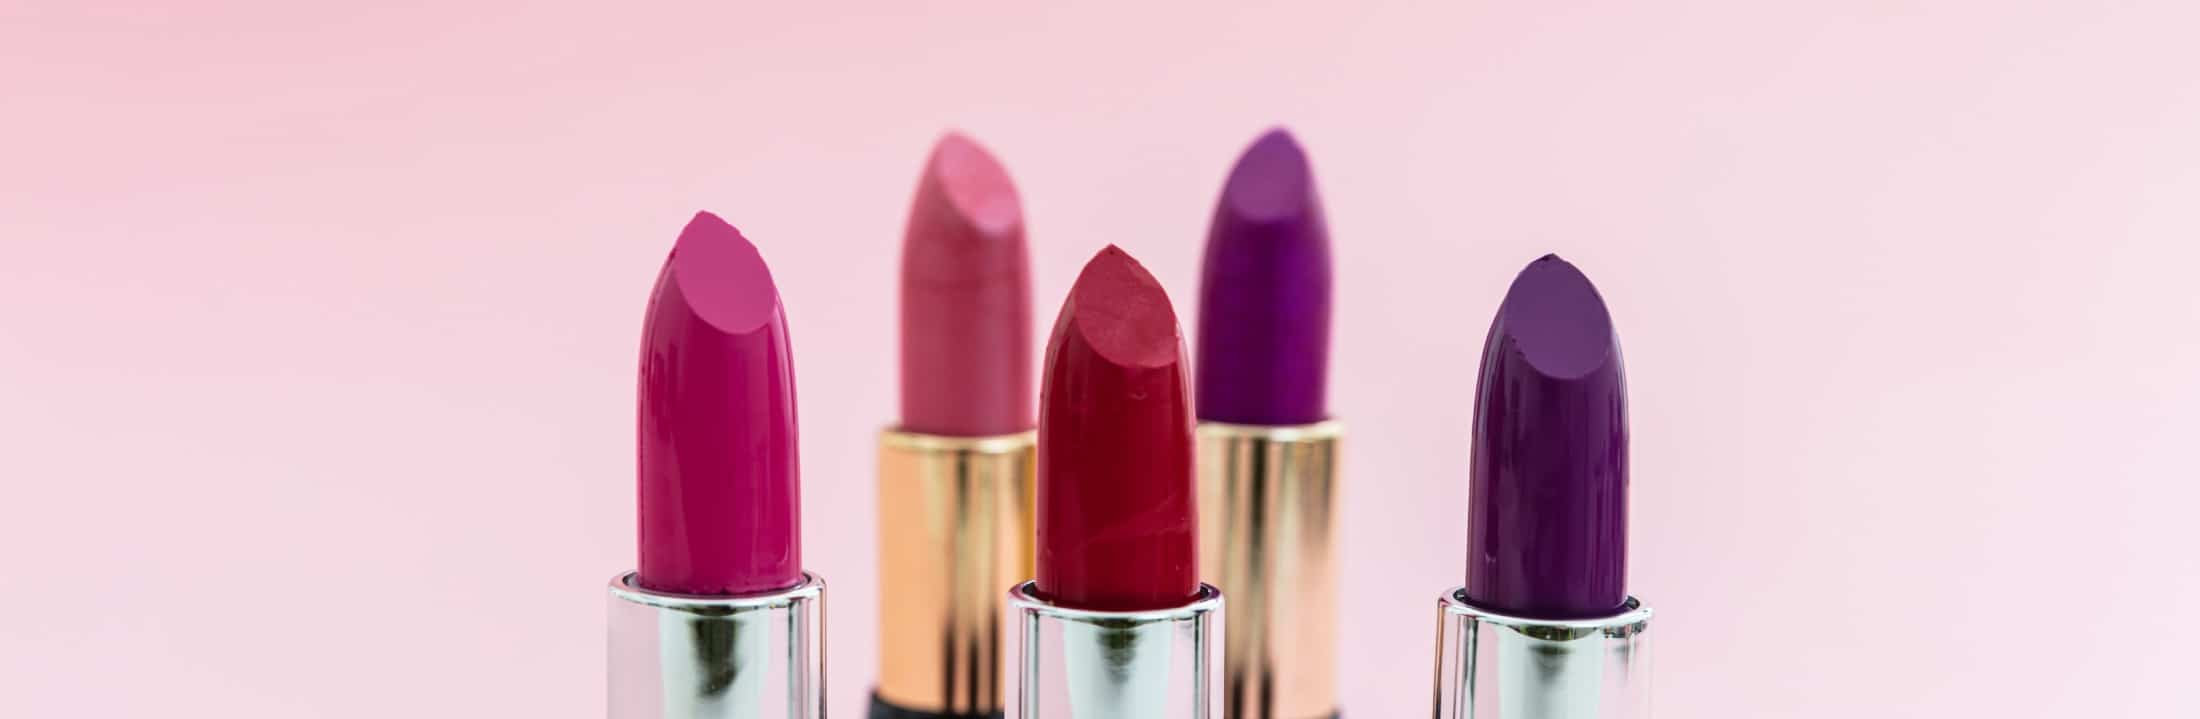 how to choose lipstick color